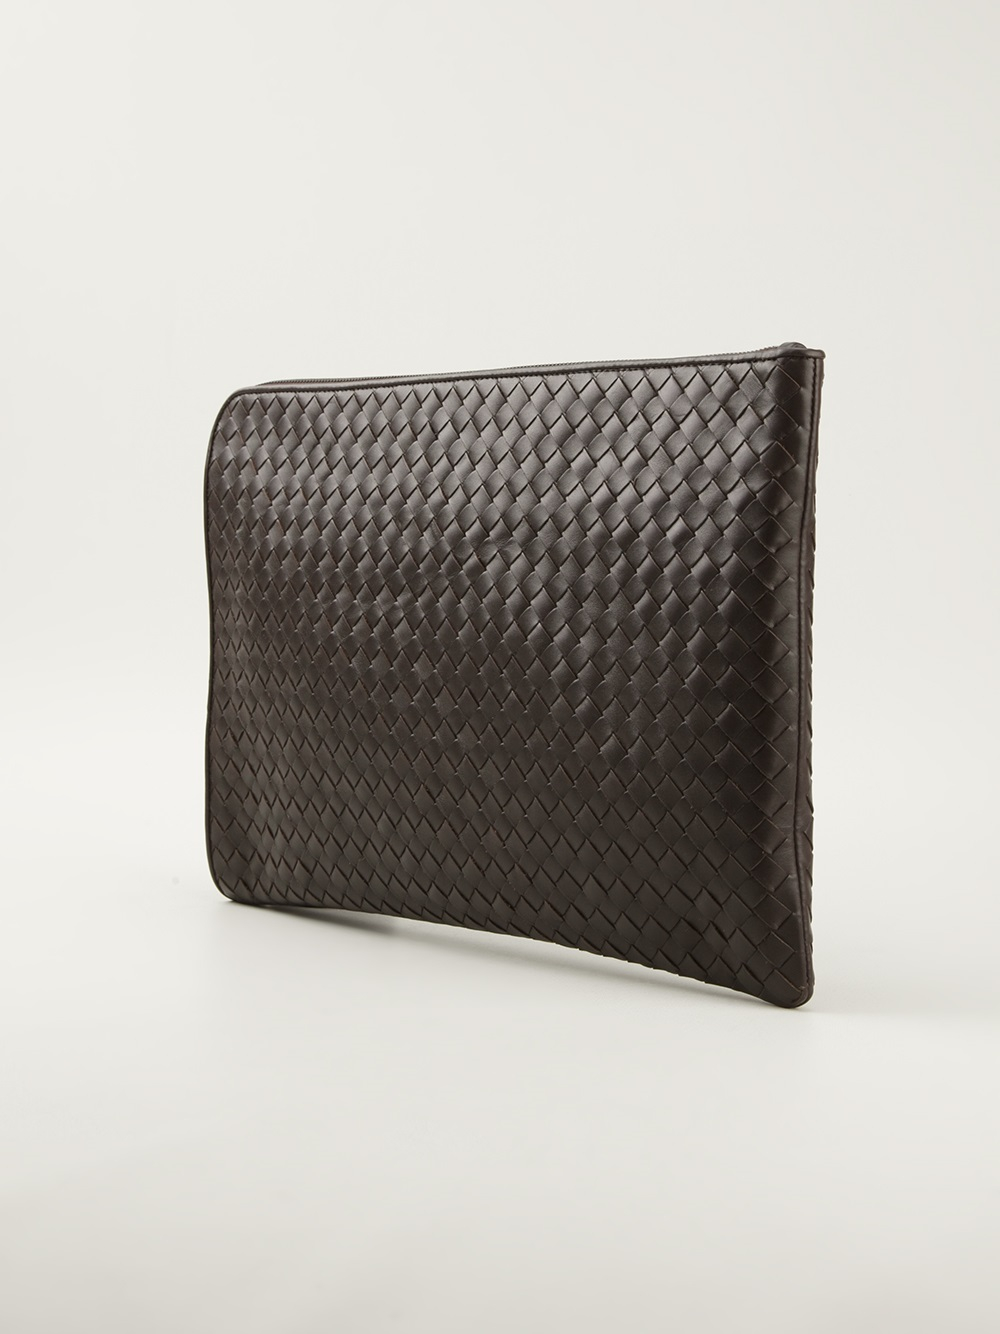 Bottega Veneta Clutch Archives | Spotted Fashion